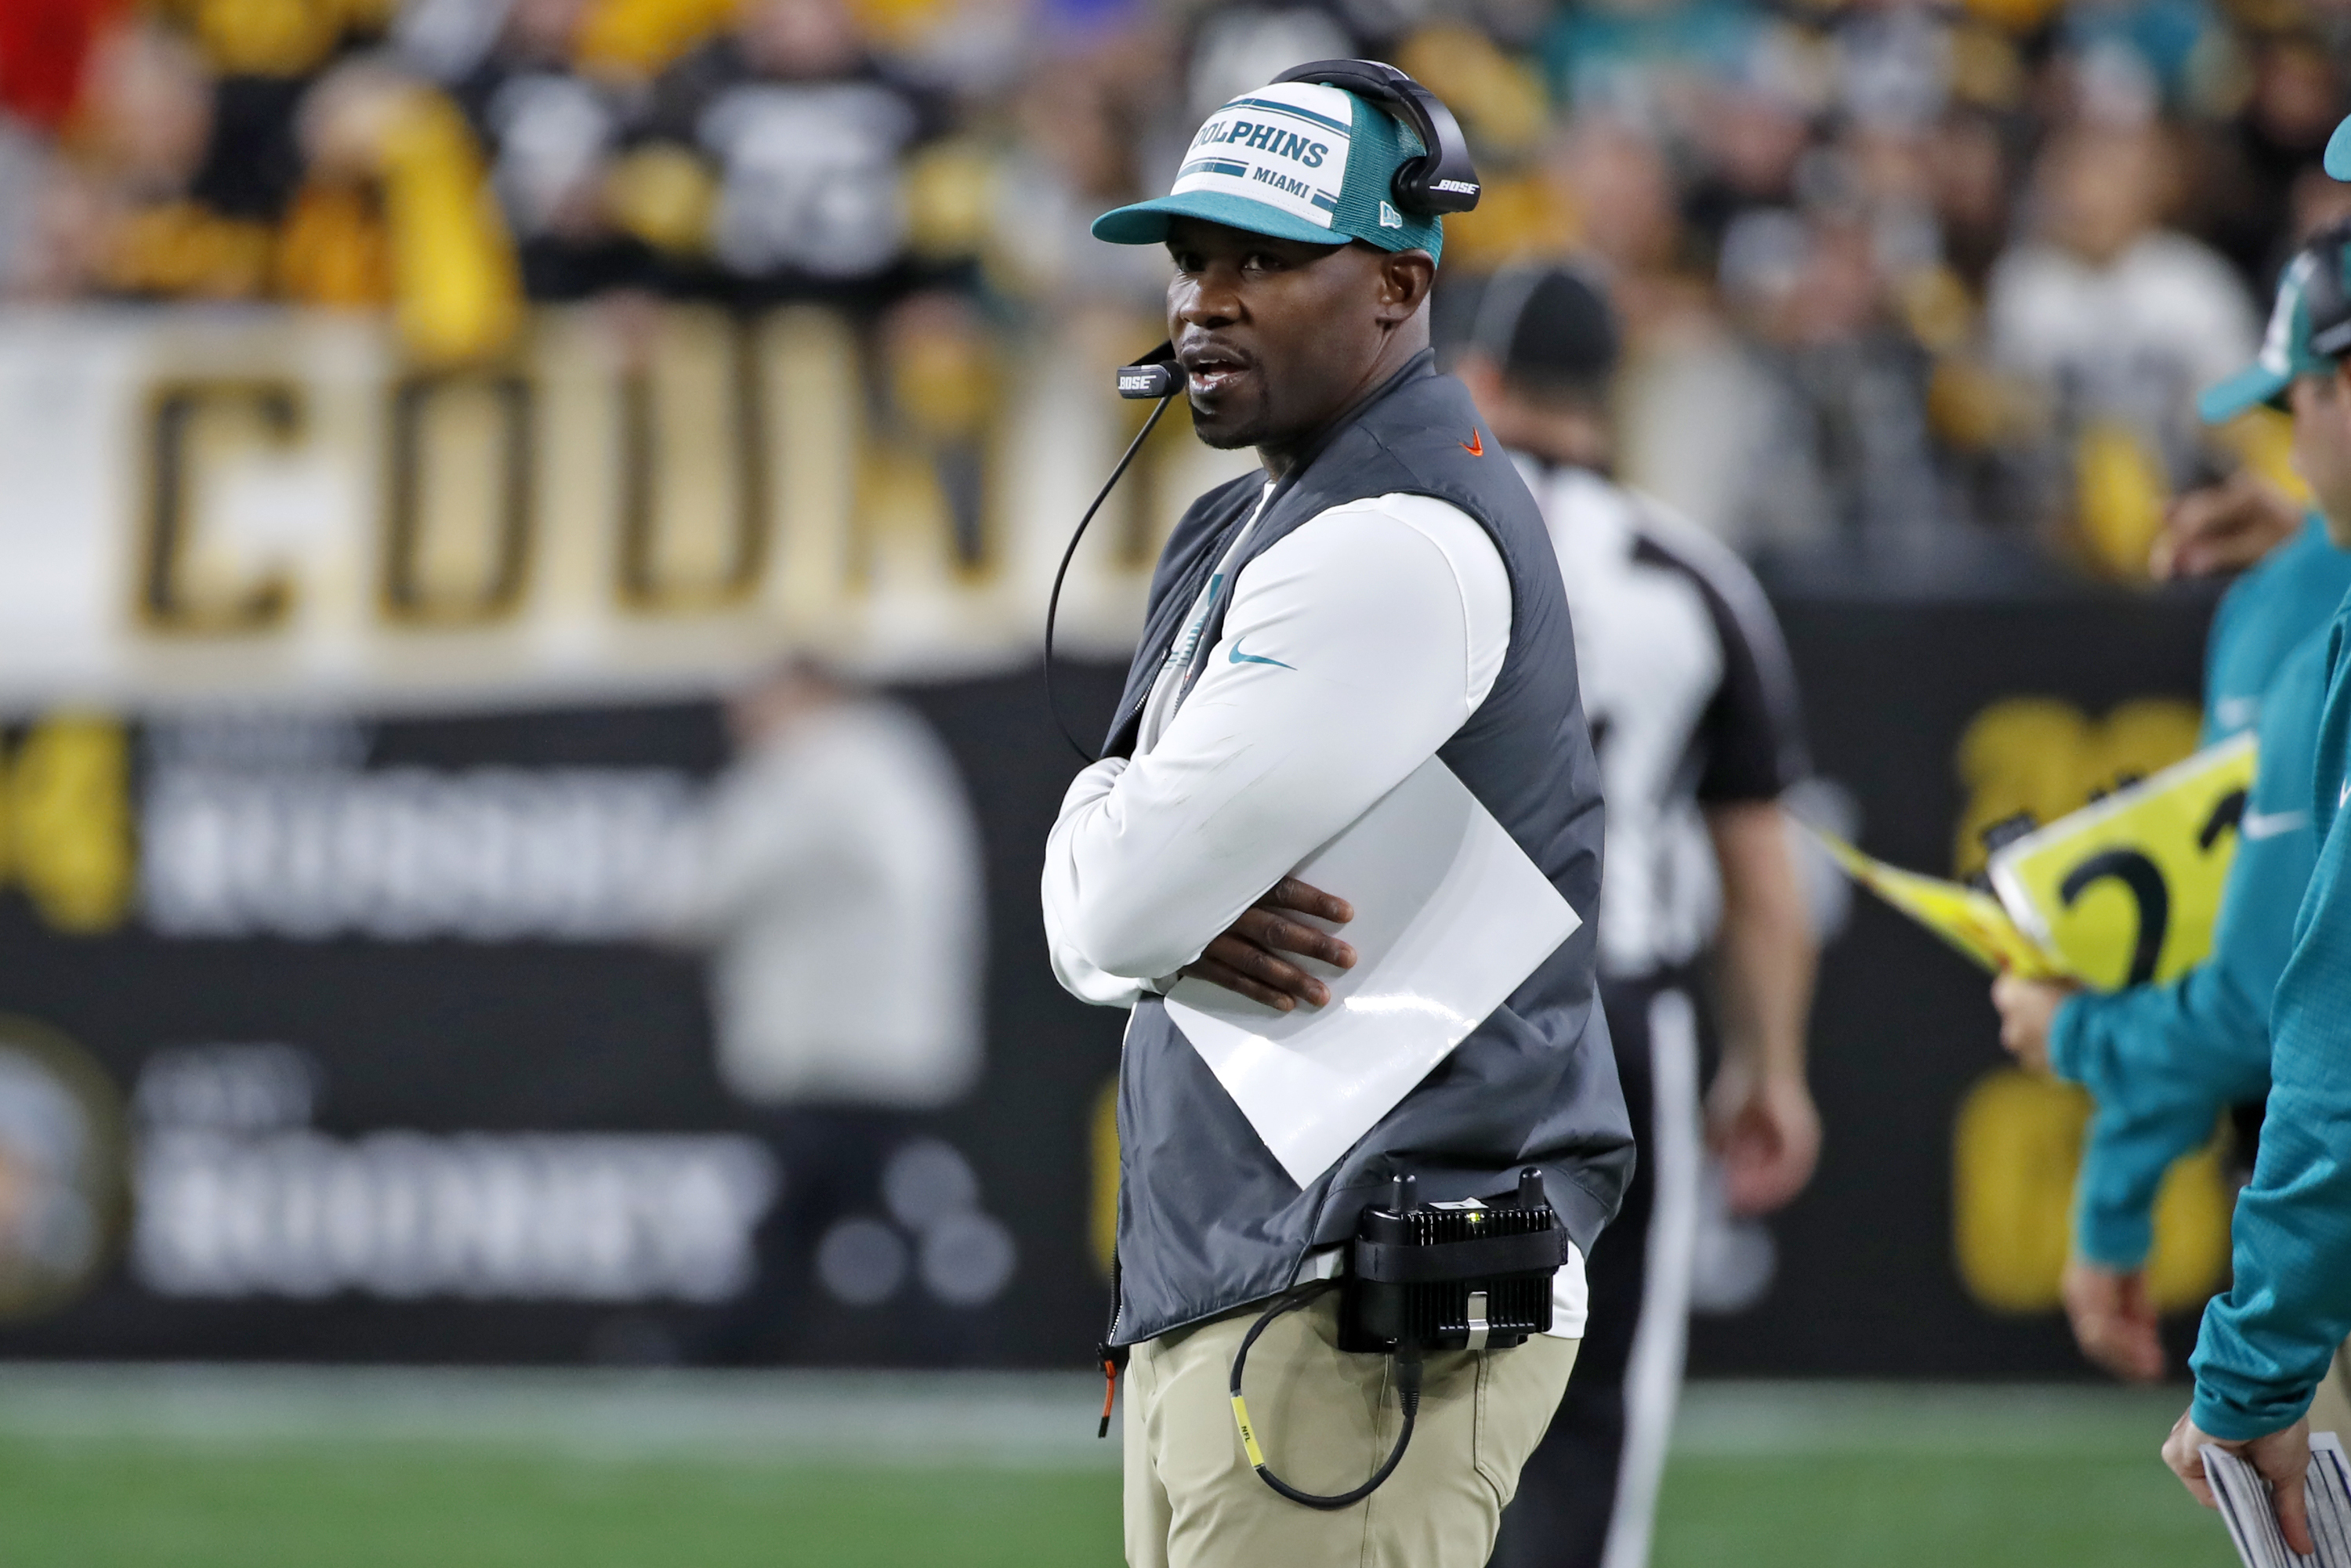 Miami Dolphins head coach Brian Flores stands on the sideline during the second half of an NFL football game against the Pittsburgh Steelers in Pittsburgh, Monday, Oct. 28, 2019. (AP Photo/Don Wright)